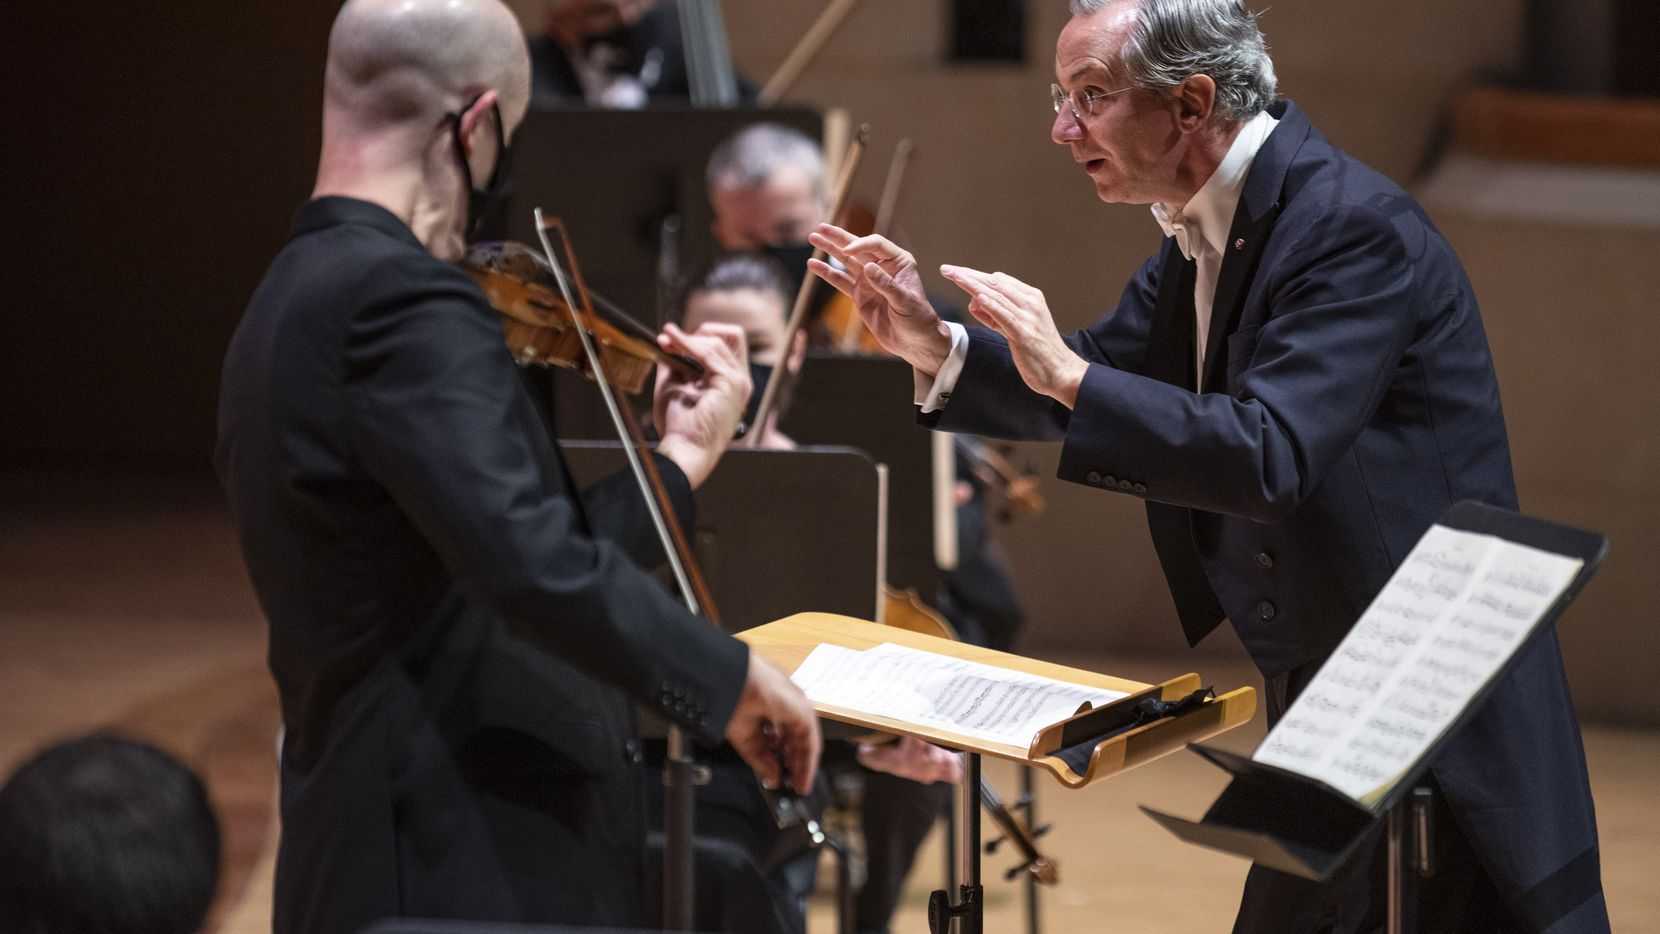 Fabio Luisi, Dallas Symphony Orchestra music director (right) conducts Mozart Concerto No. 3 for Violin and Orchestra in G Major, K. 216, with violinist Alexander Kerr (left)  on Friday, Feb. 19, 2021 at the Morton H. Meyerson Symphony Center in Dallas.